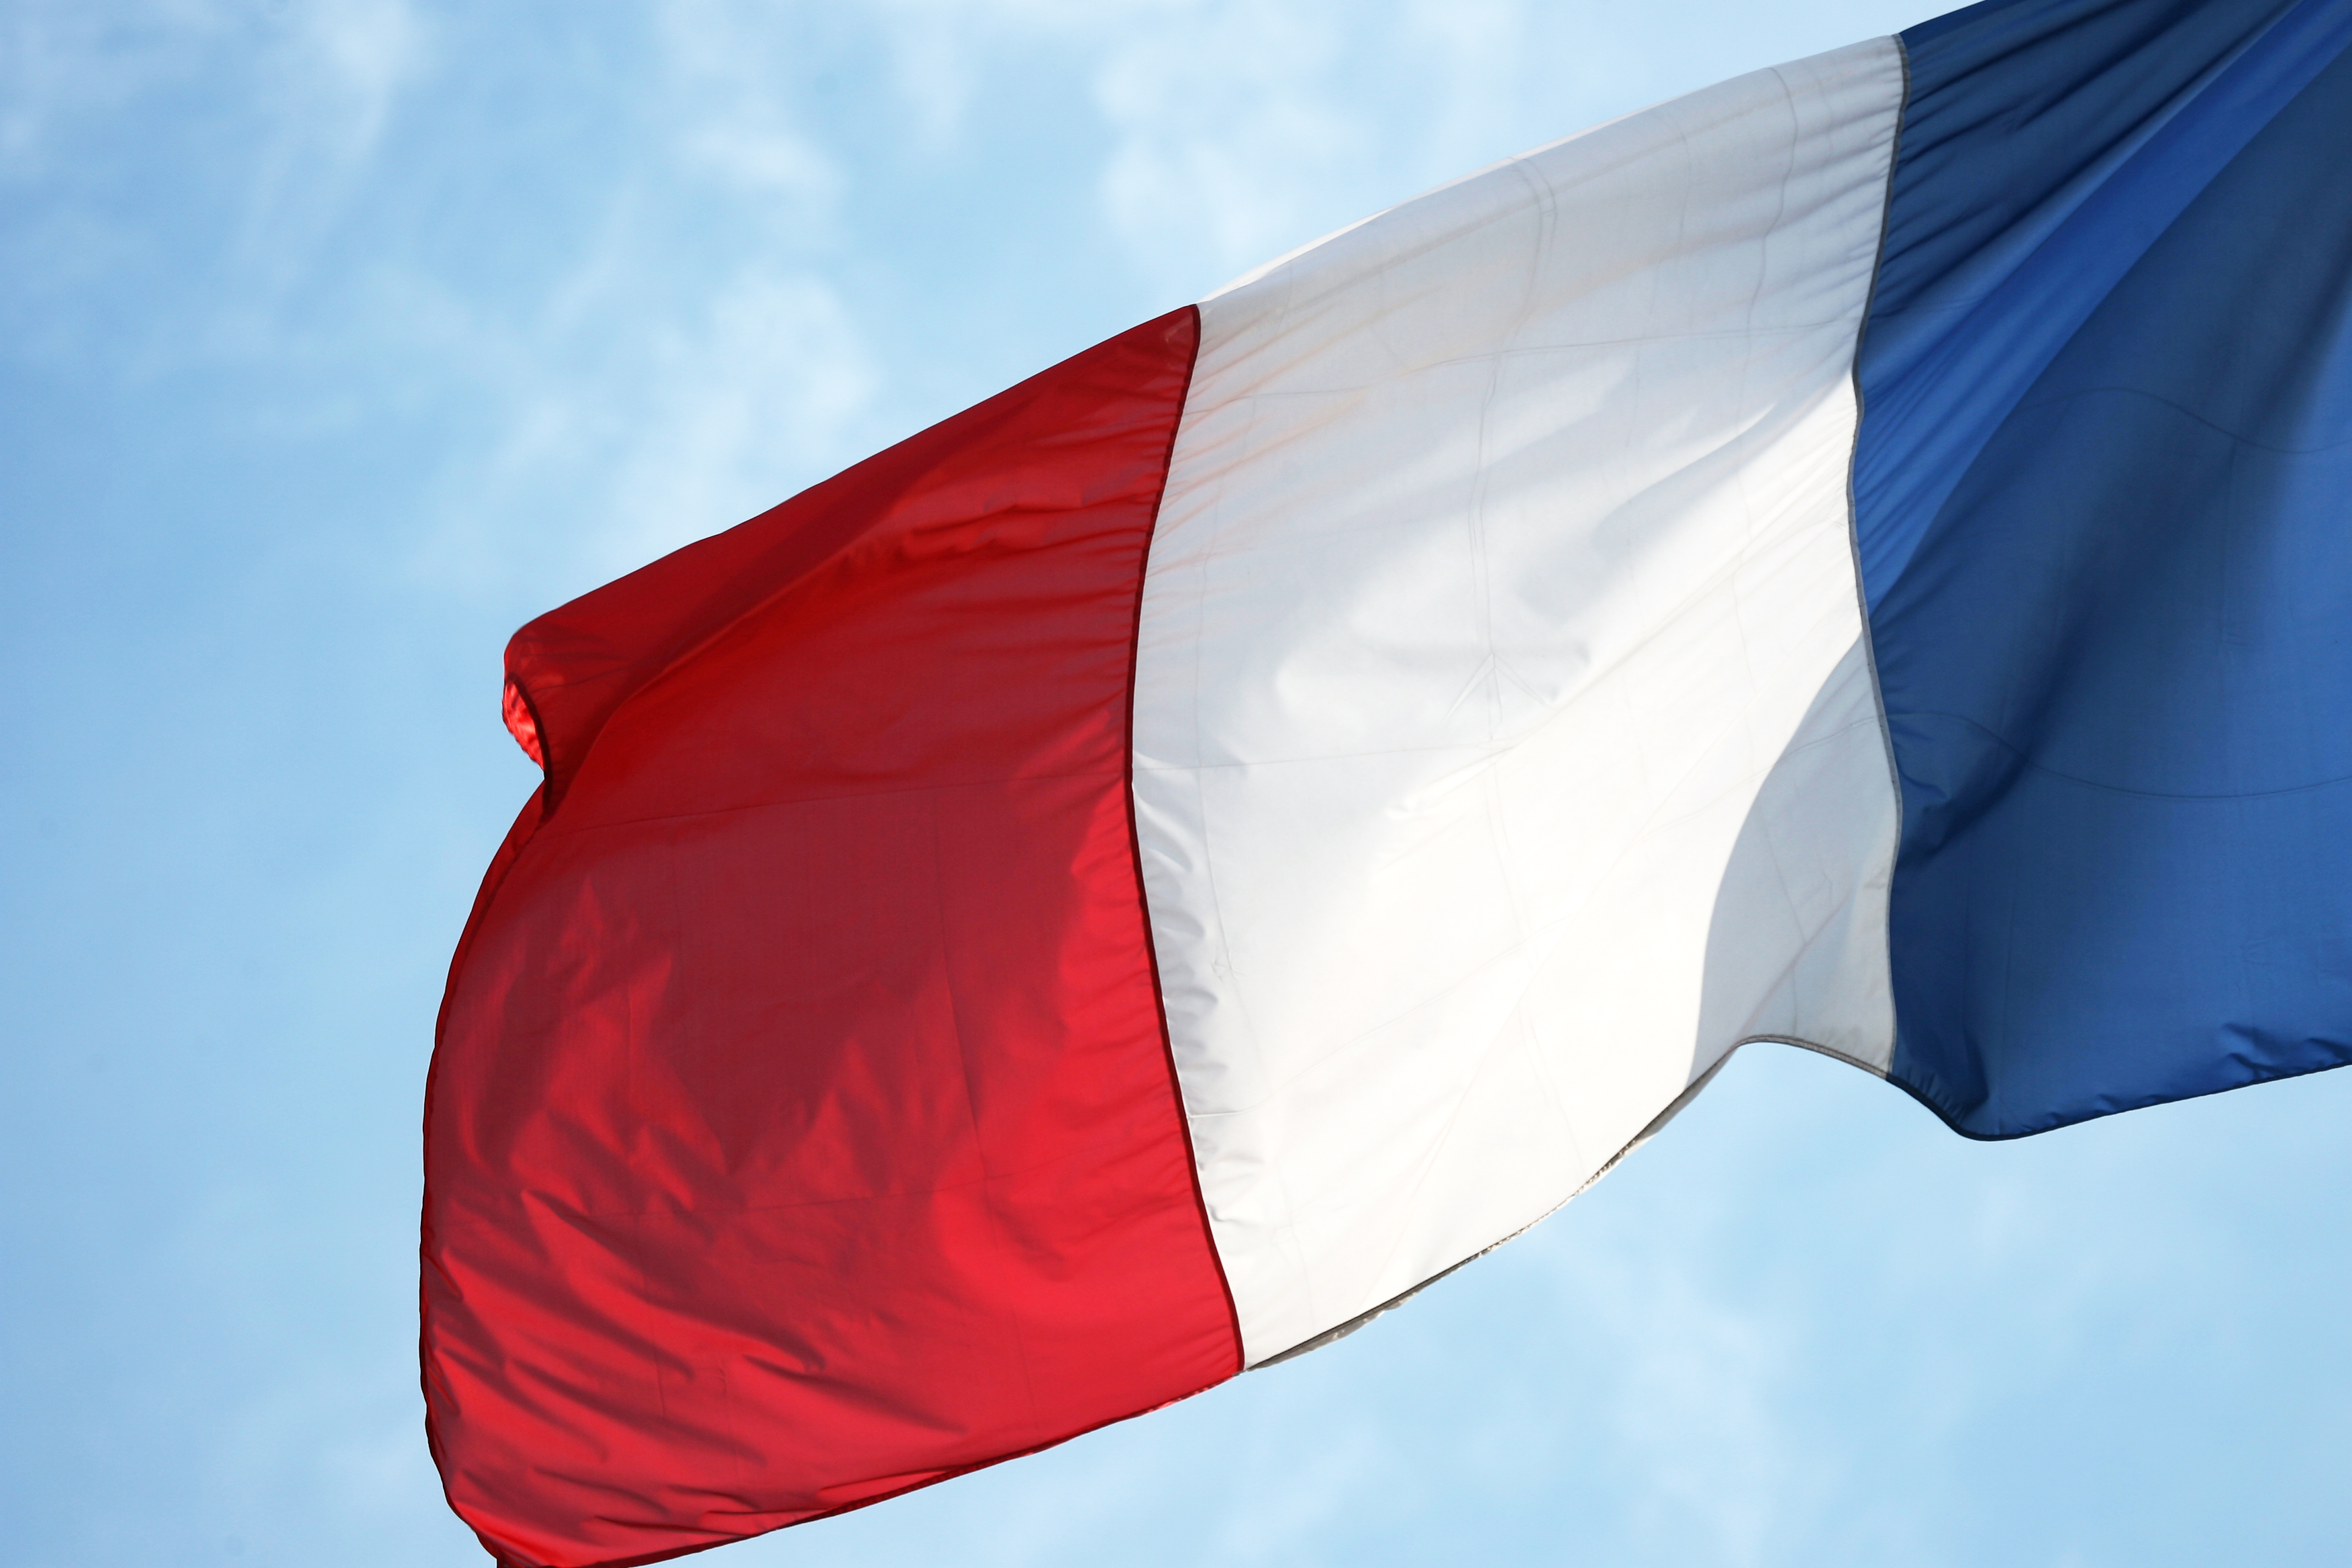 Picture of the French flag taken 20 June